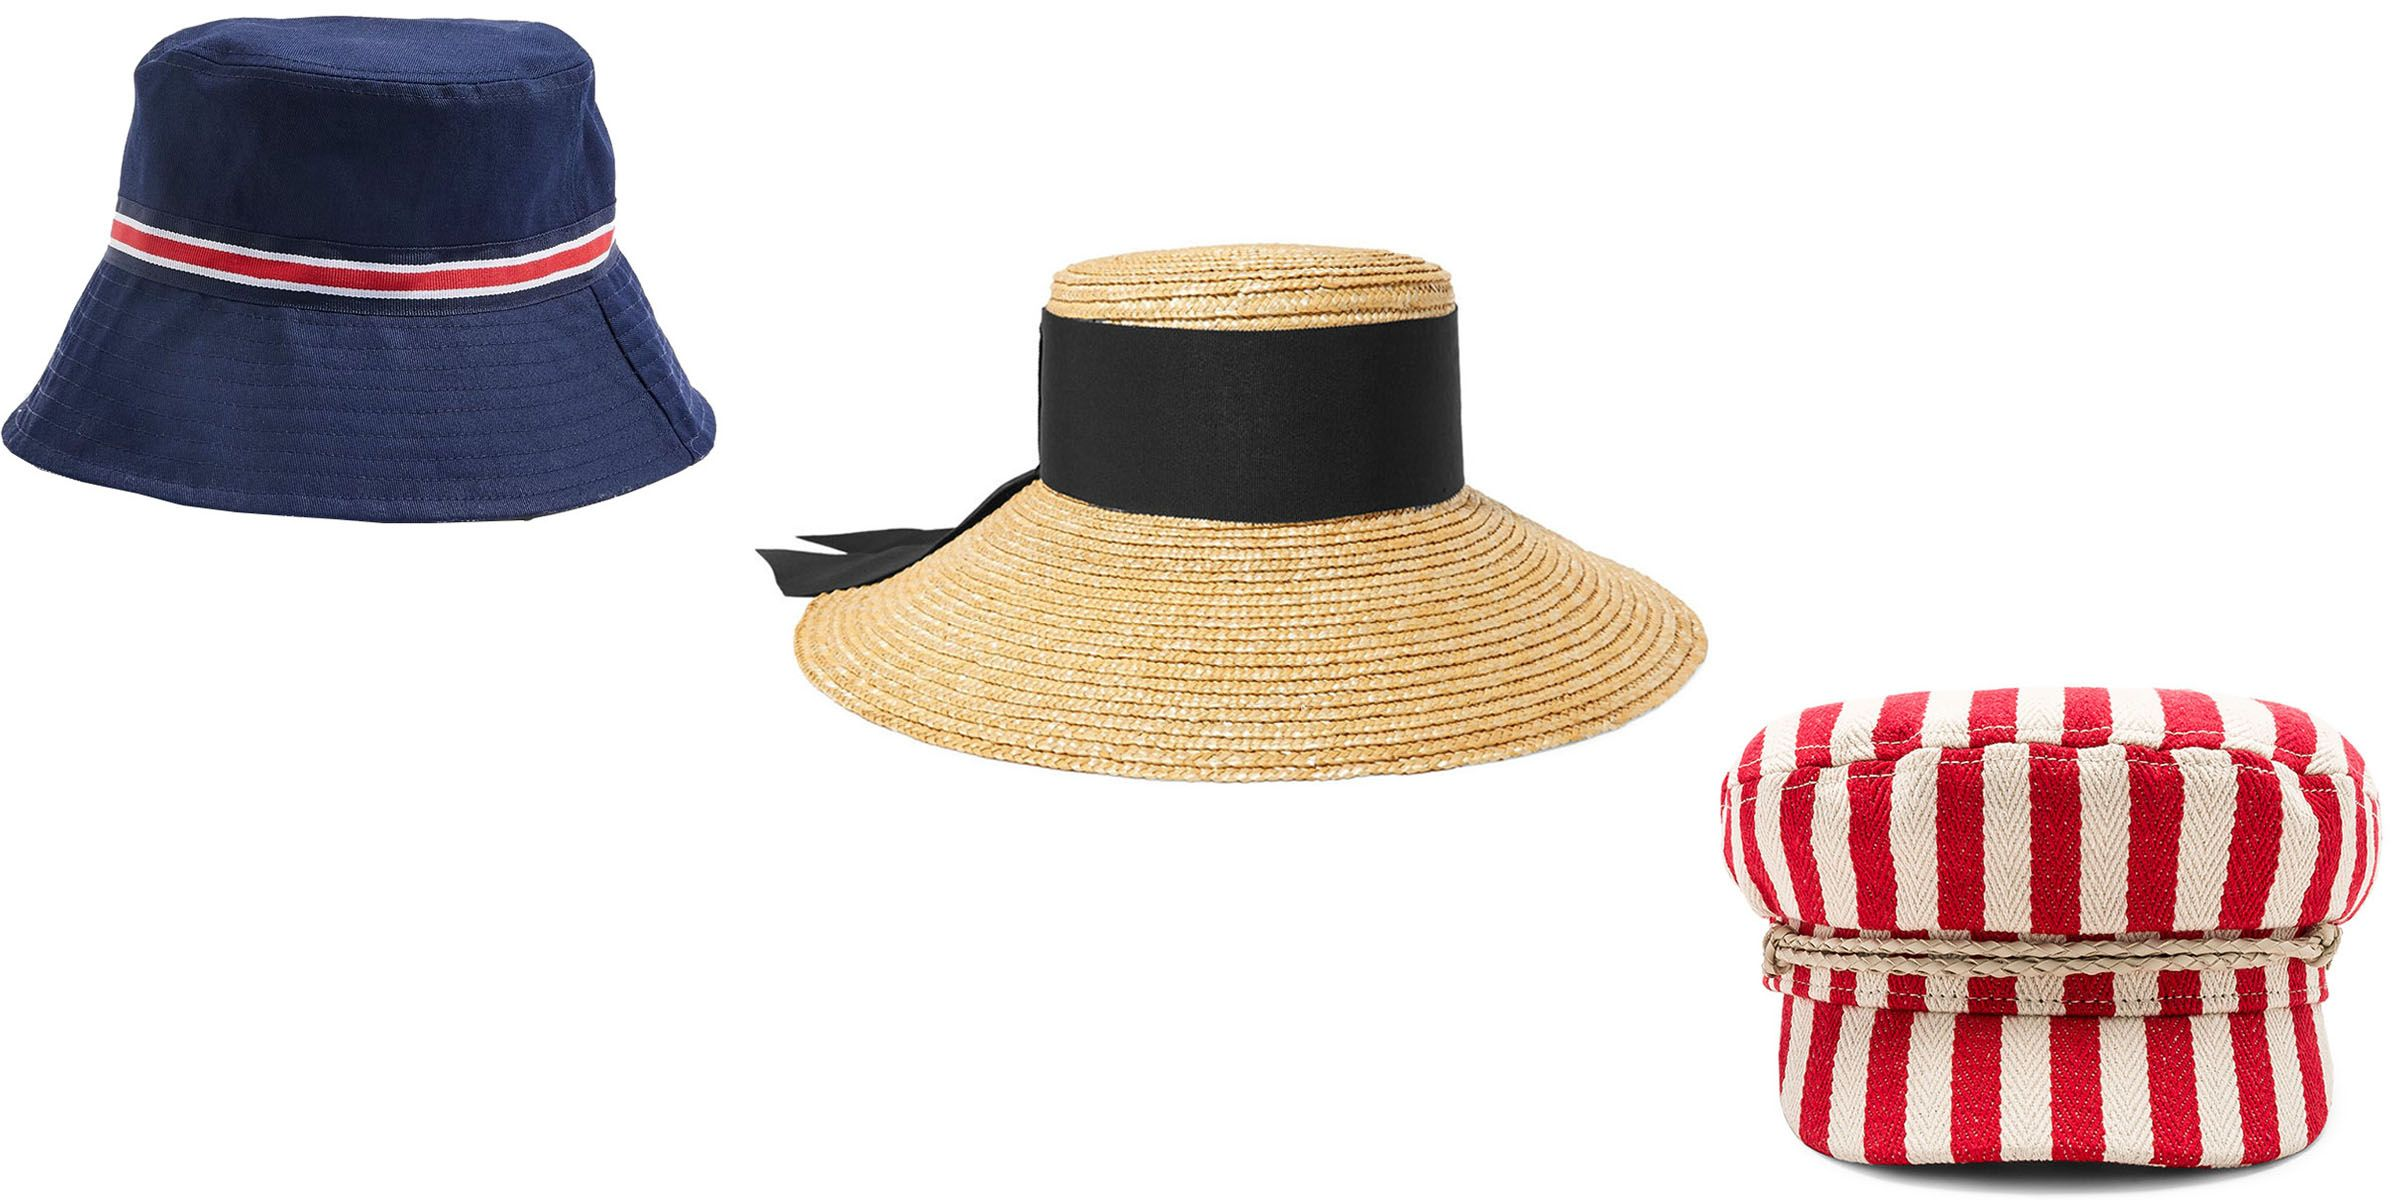 Best Summer Hats for Women 2018 - Cute Sun Hats for the Beach or Pool 5760cc111bf1